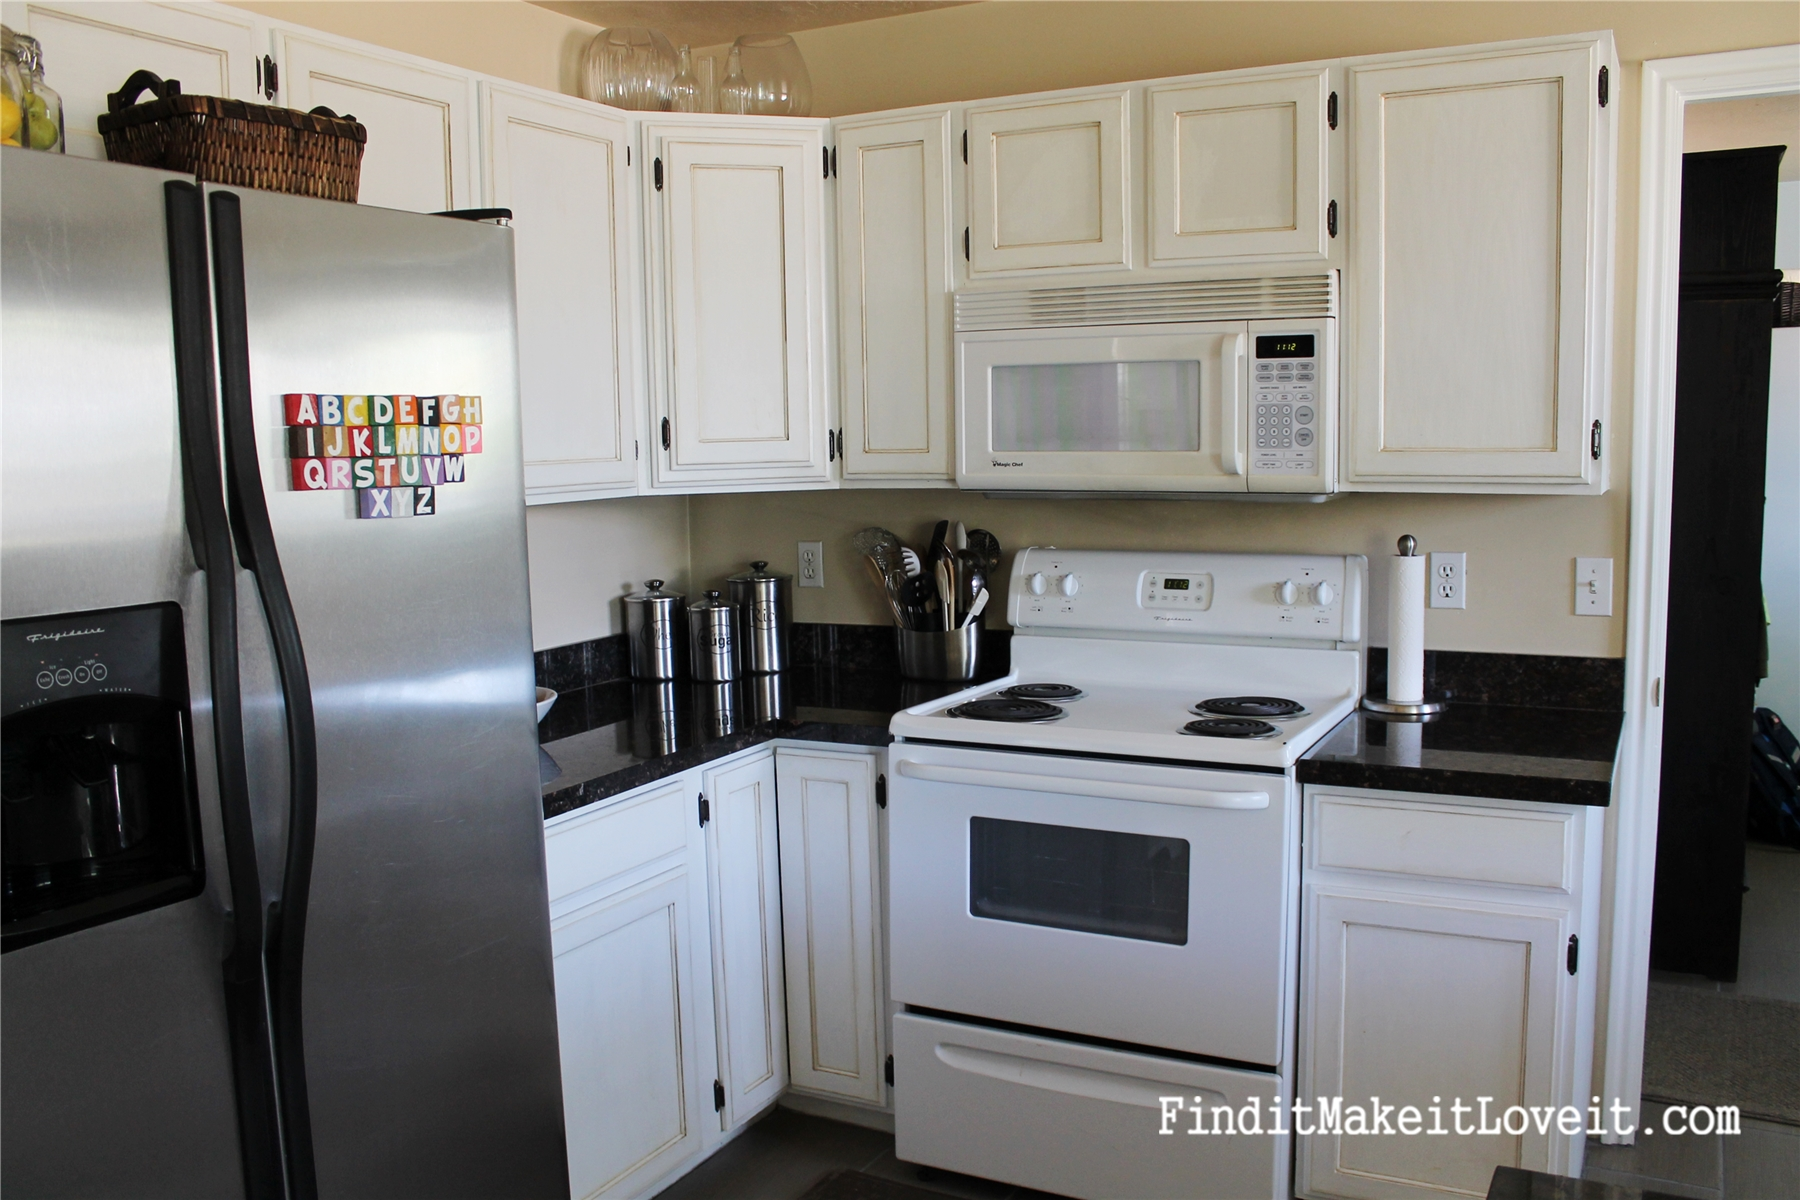 $150 Kitchen Cabinet Makeover  Find It, Make It, Love It. Kitchen Mats Target. Kitchen Runner Rugs Washable. Kitchen Nick Nacks. Ikea Kitchen Remodeling. Kitchen Sink Red Table Wine. What Is The Best Material For Kitchen Countertops. Kitchen And Bath Decor. Kitchen Stone Flooring